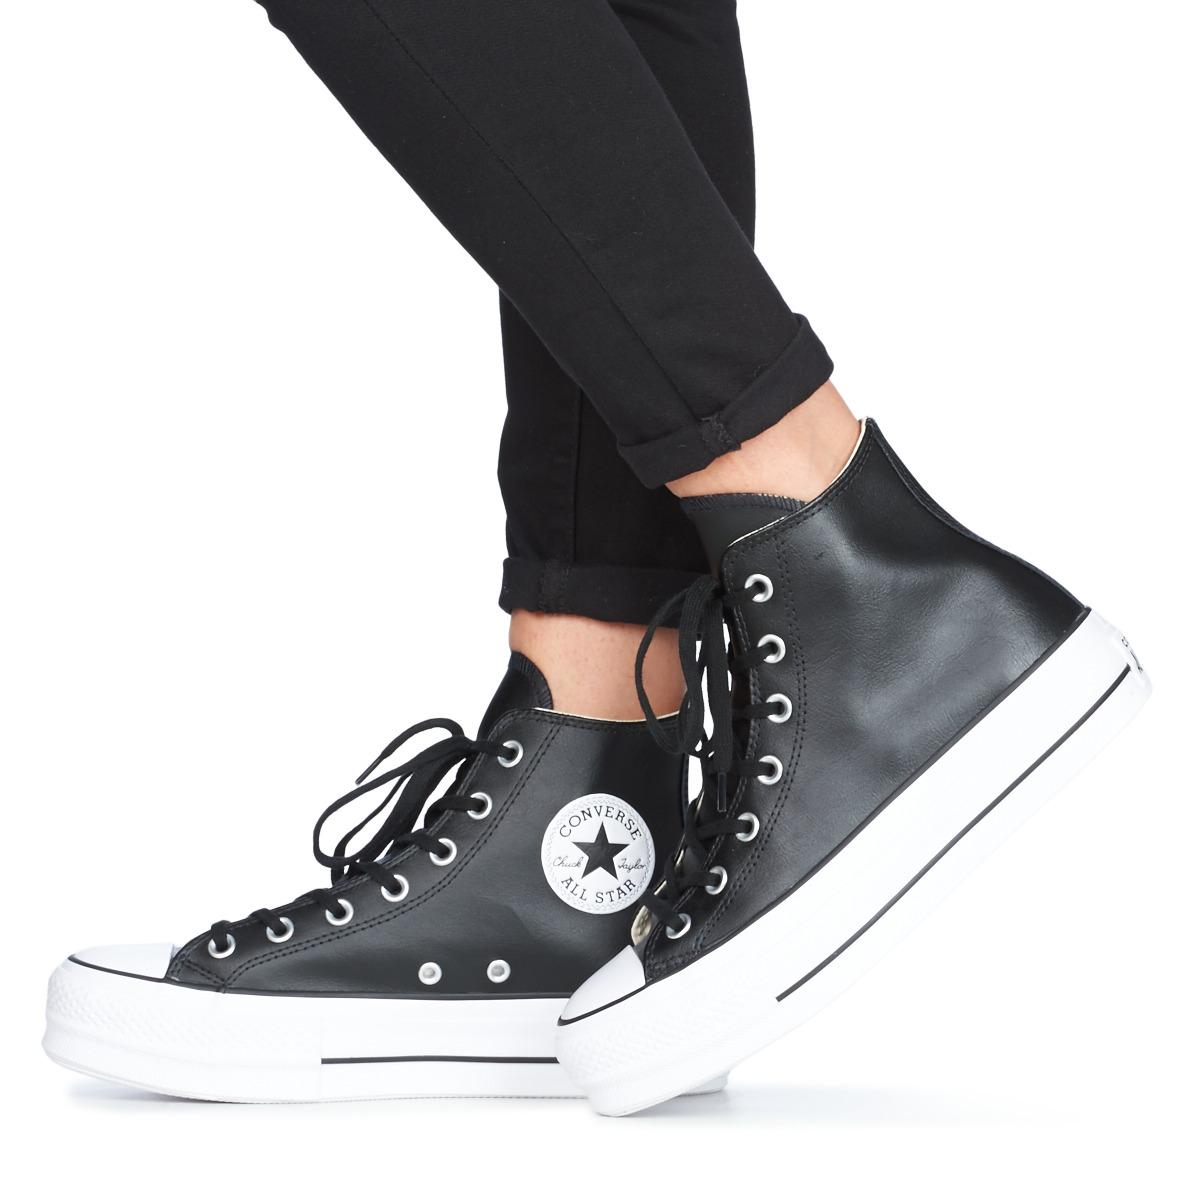 Converse Black Leather Chuck Taylor All